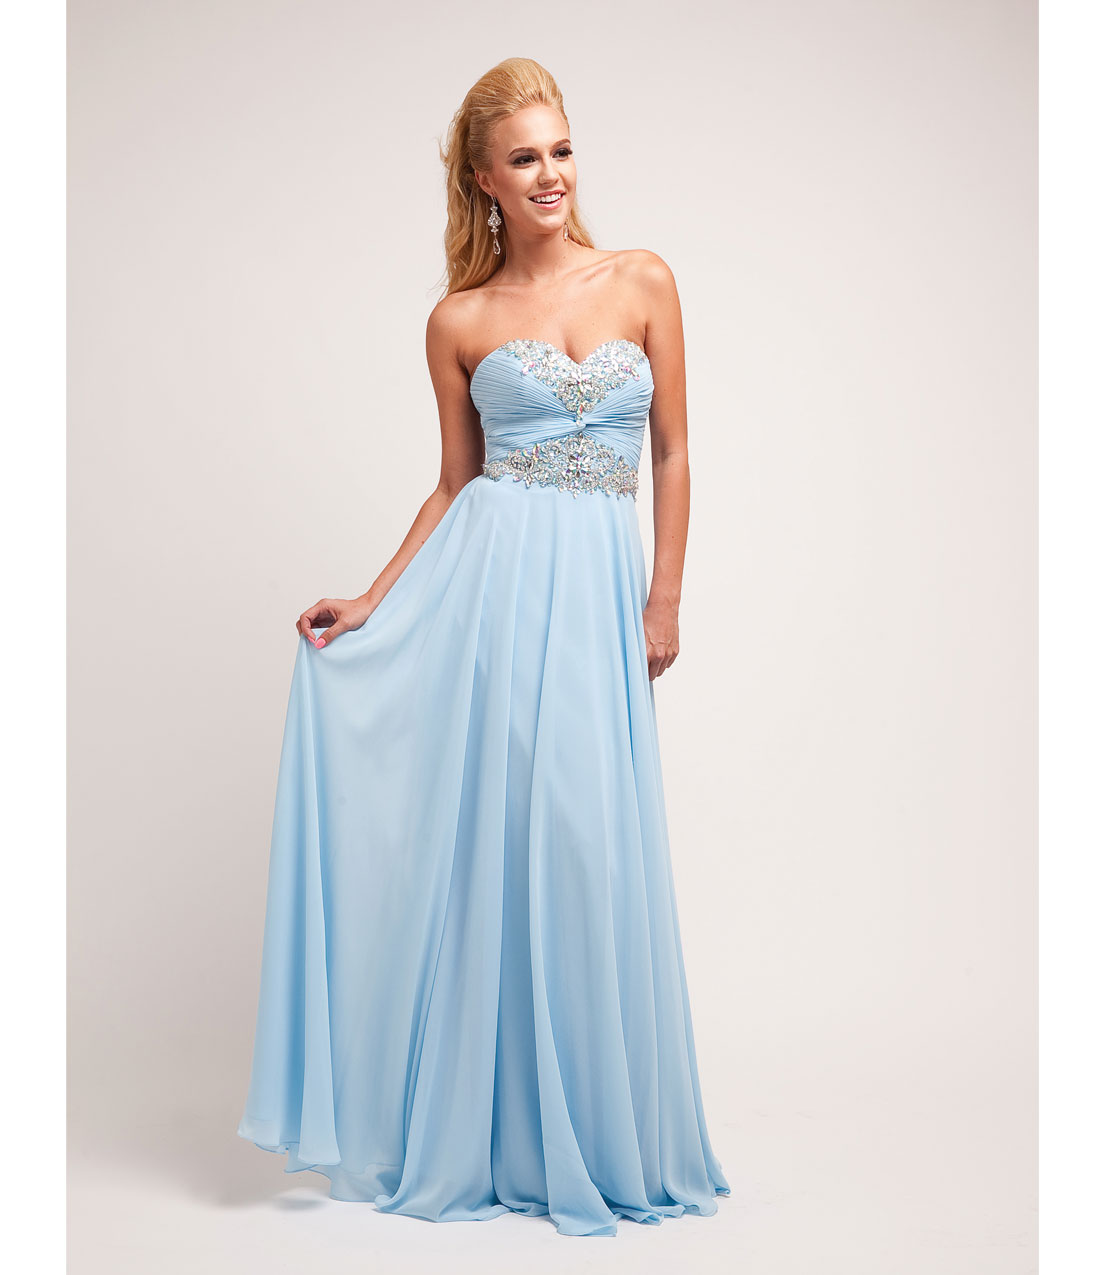 Prom Dresses - Sky Blue Chiffon & Beaded Strapless Gown - Unique ...